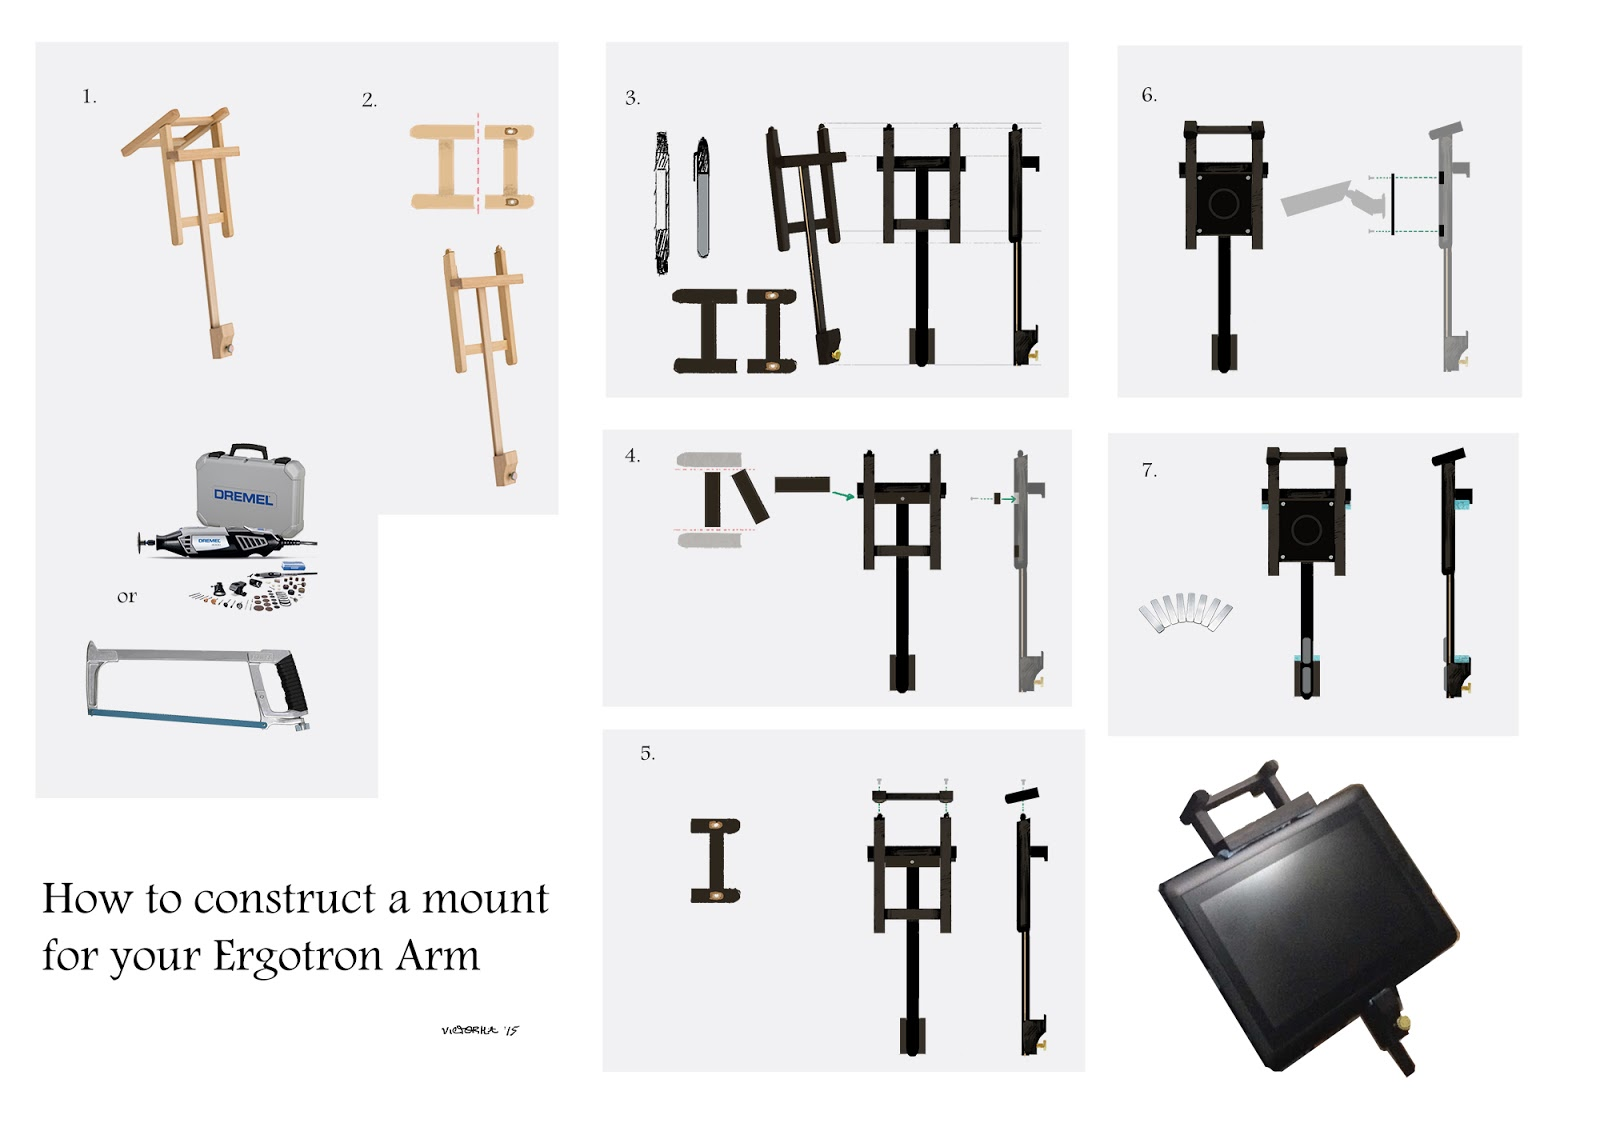 Victor Ha : In-depth diagram and process for Mounting